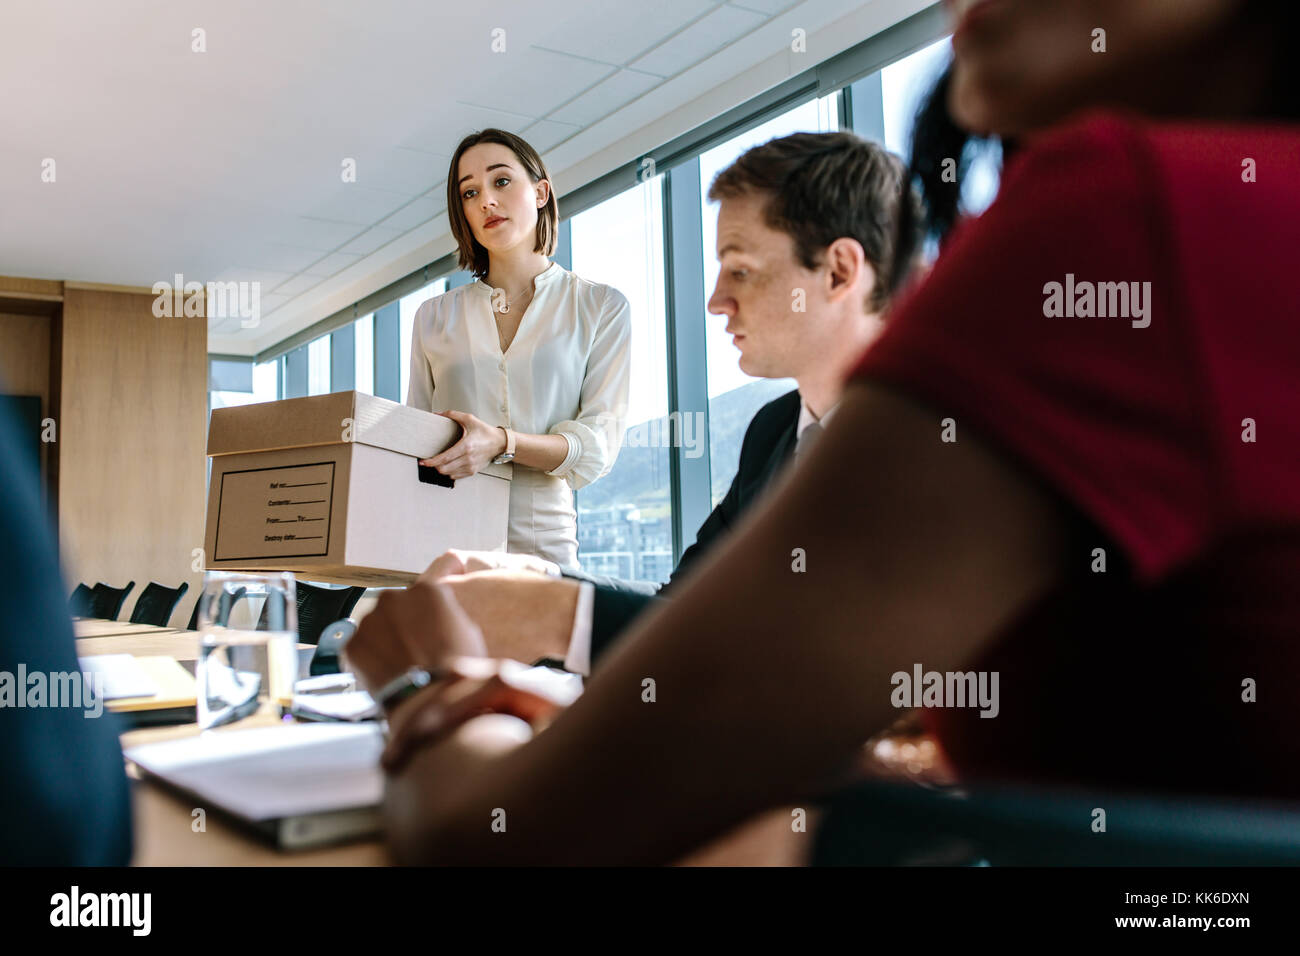 Woman holding a cardboard box at table with colleagues sitting around in conference room. Corporate business people - Stock Image